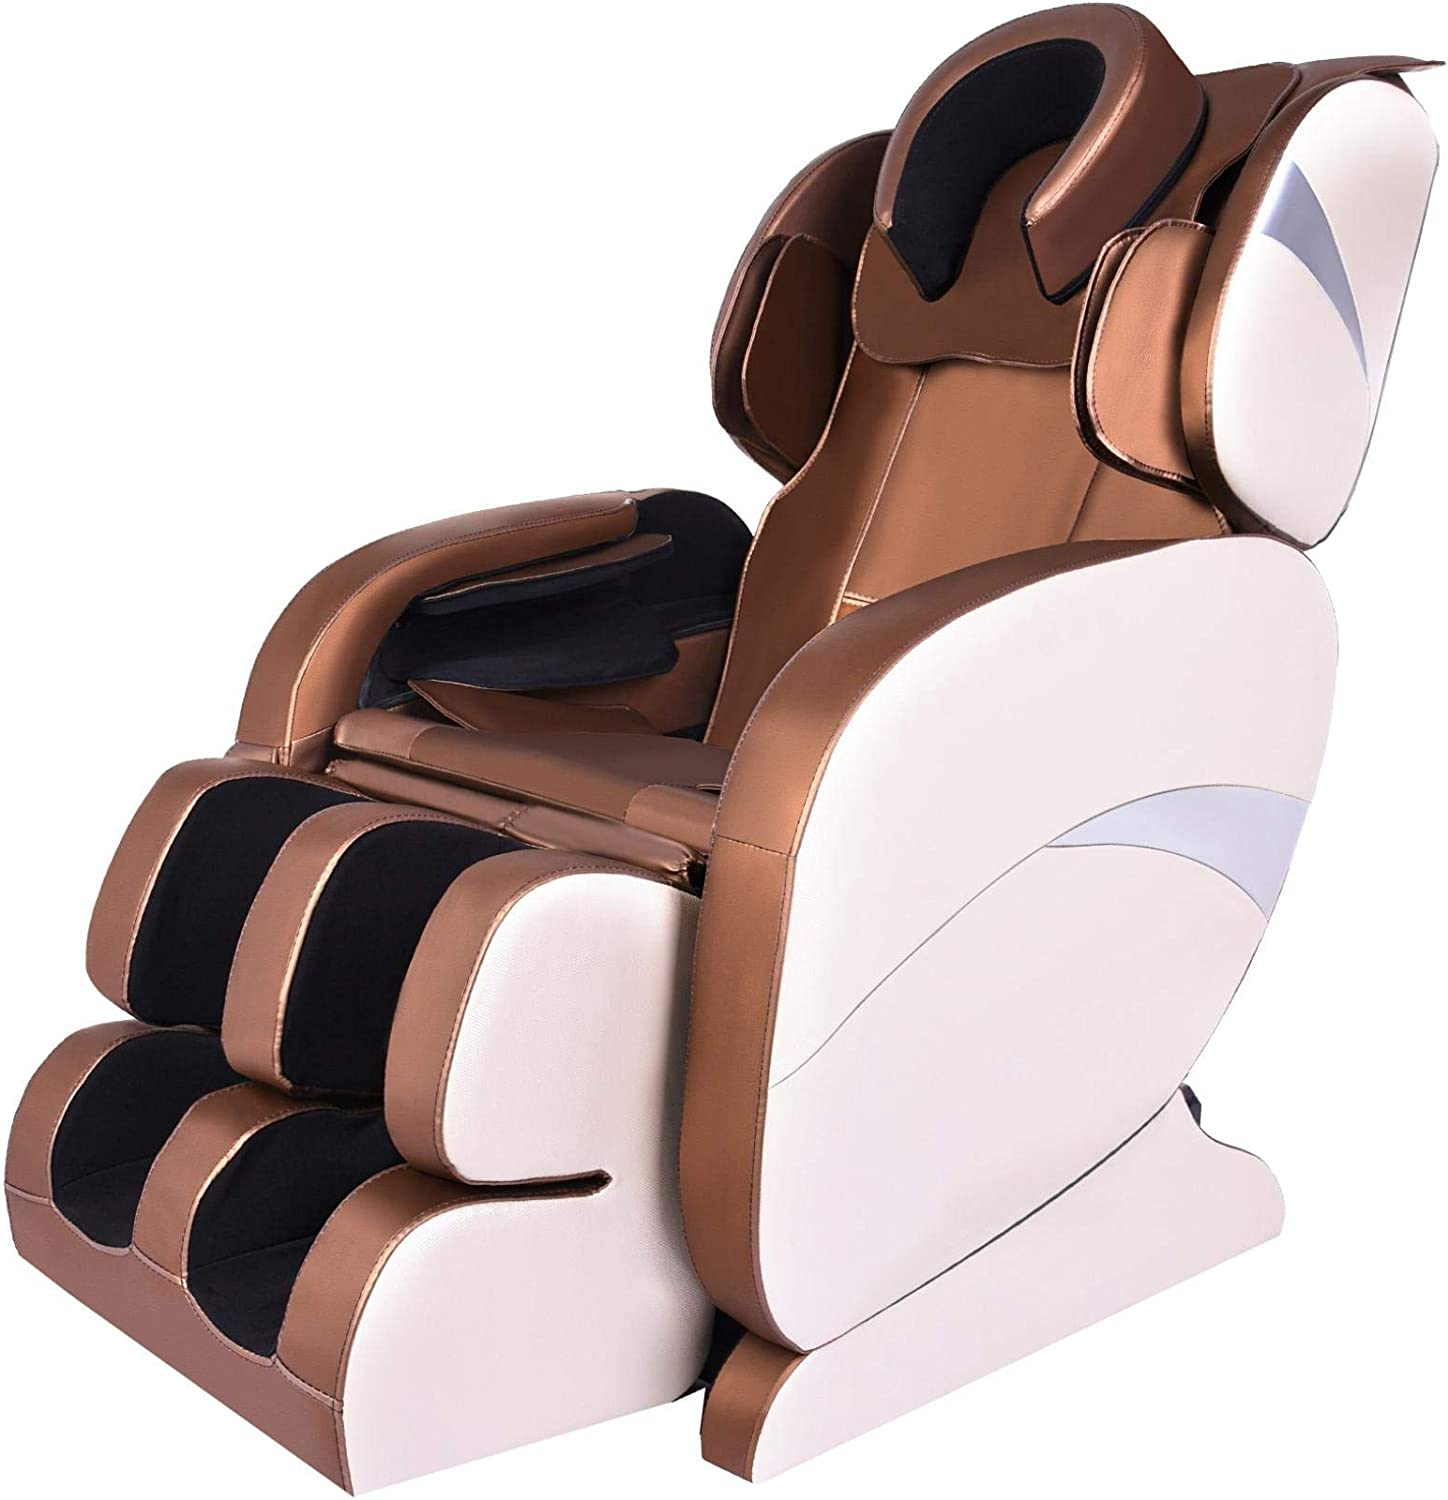 2021 Weekly update New Massage Chair Chairs Full Wholesale Recliner and Body Z